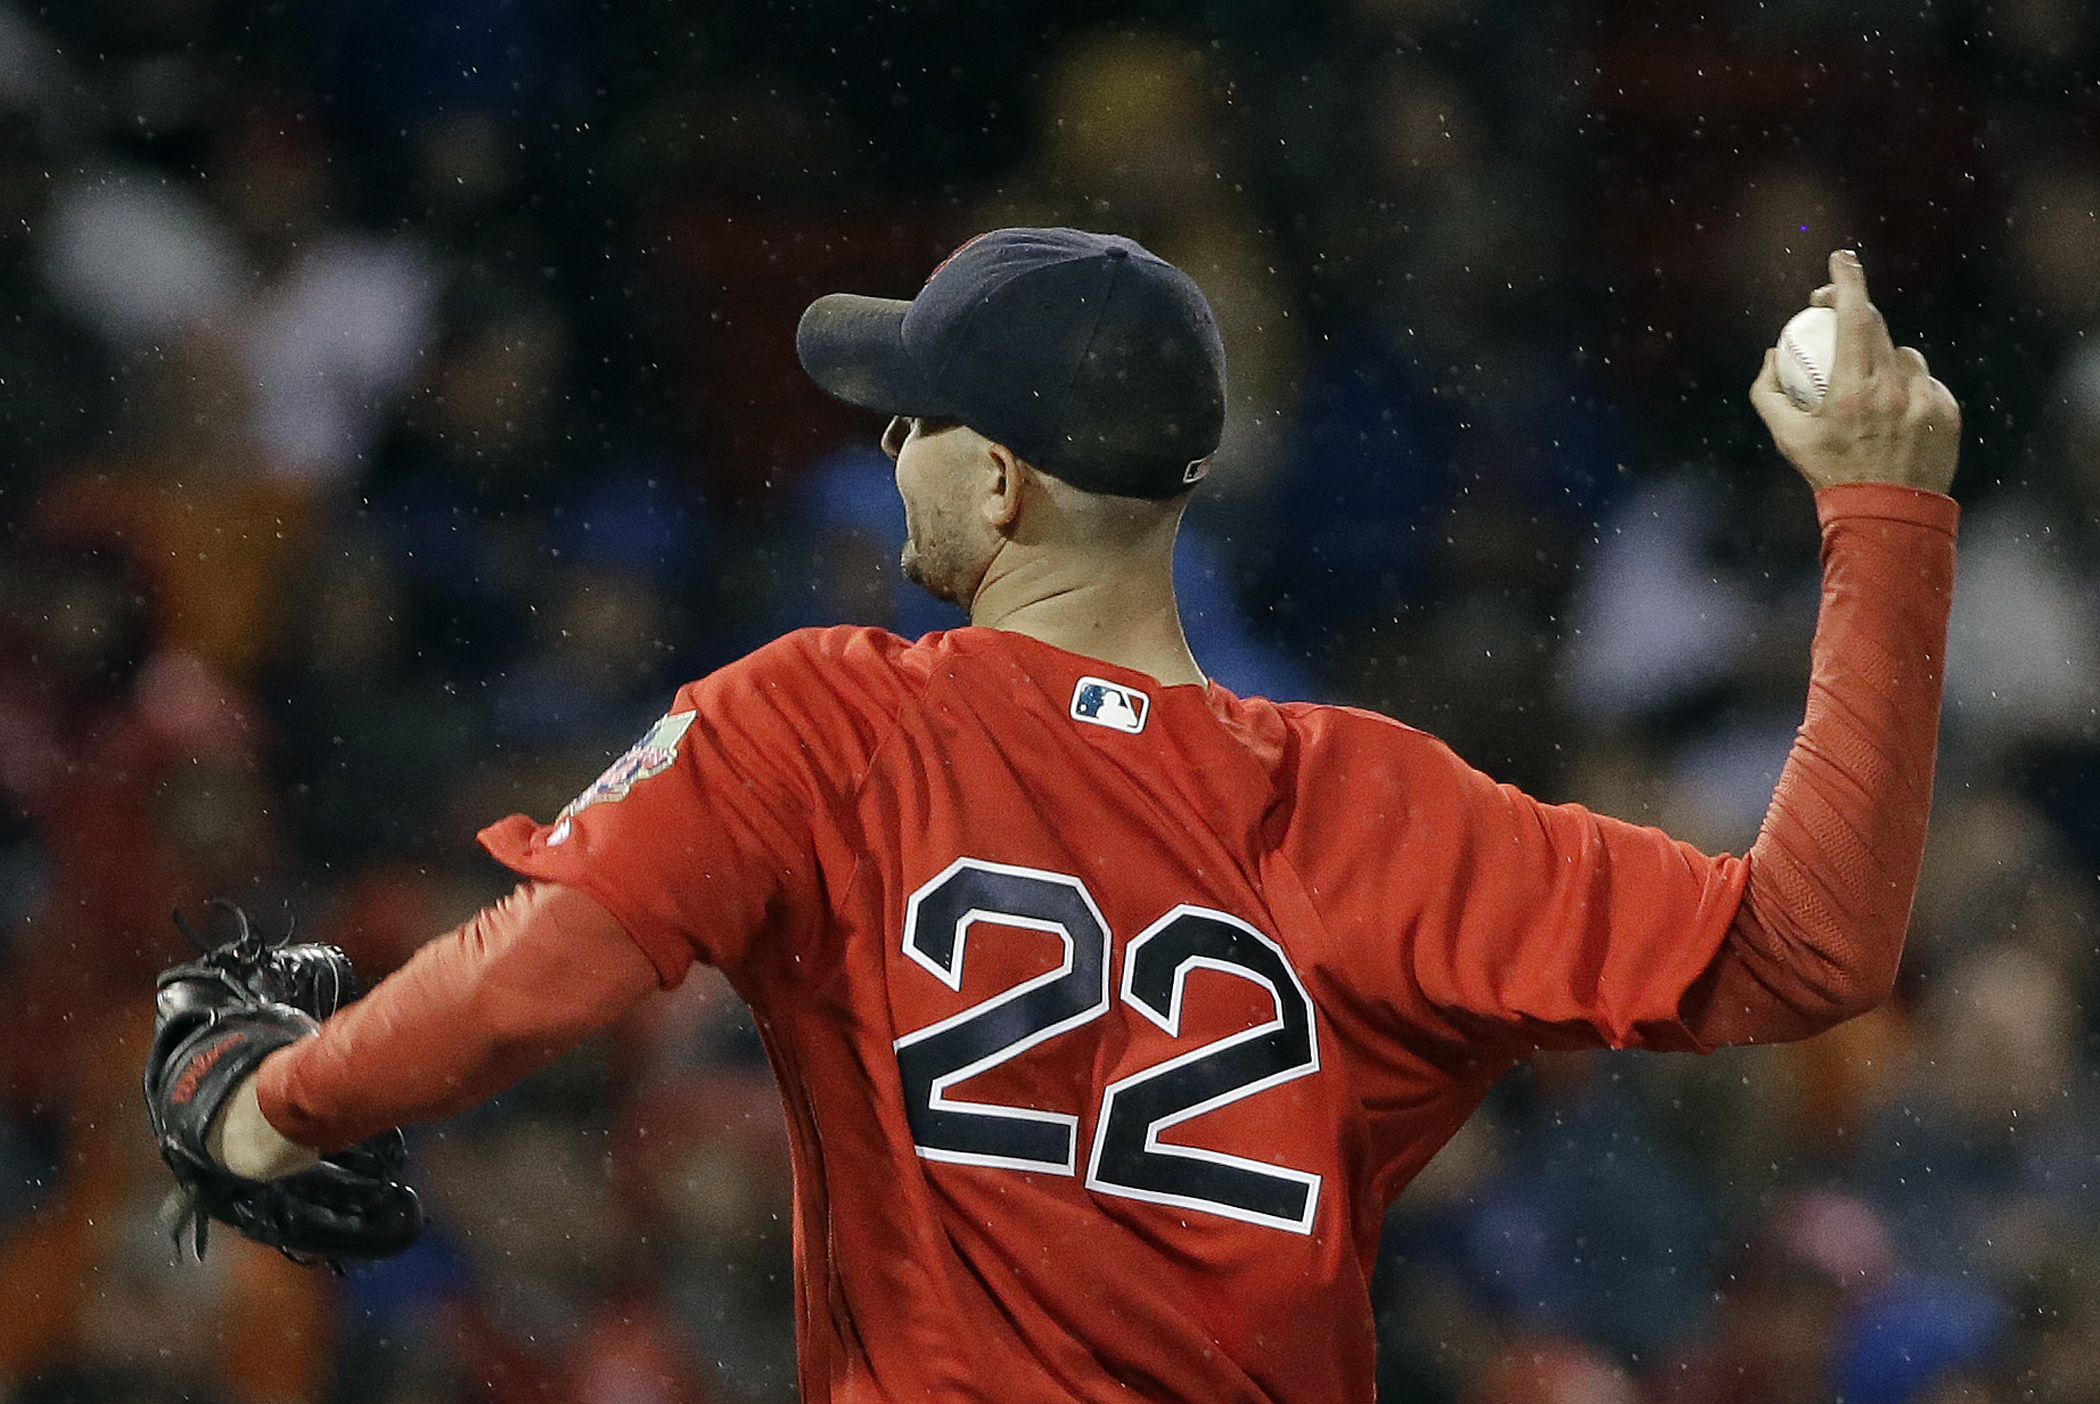 Boston Red Sox starting pitcher Rick Porcello delivers to the Toronto Blue Jays during the second inning of a baseball game at Fenway Park, Friday, Sept. 30, 2016, in Boston. (AP Photo/Elise Amendola)